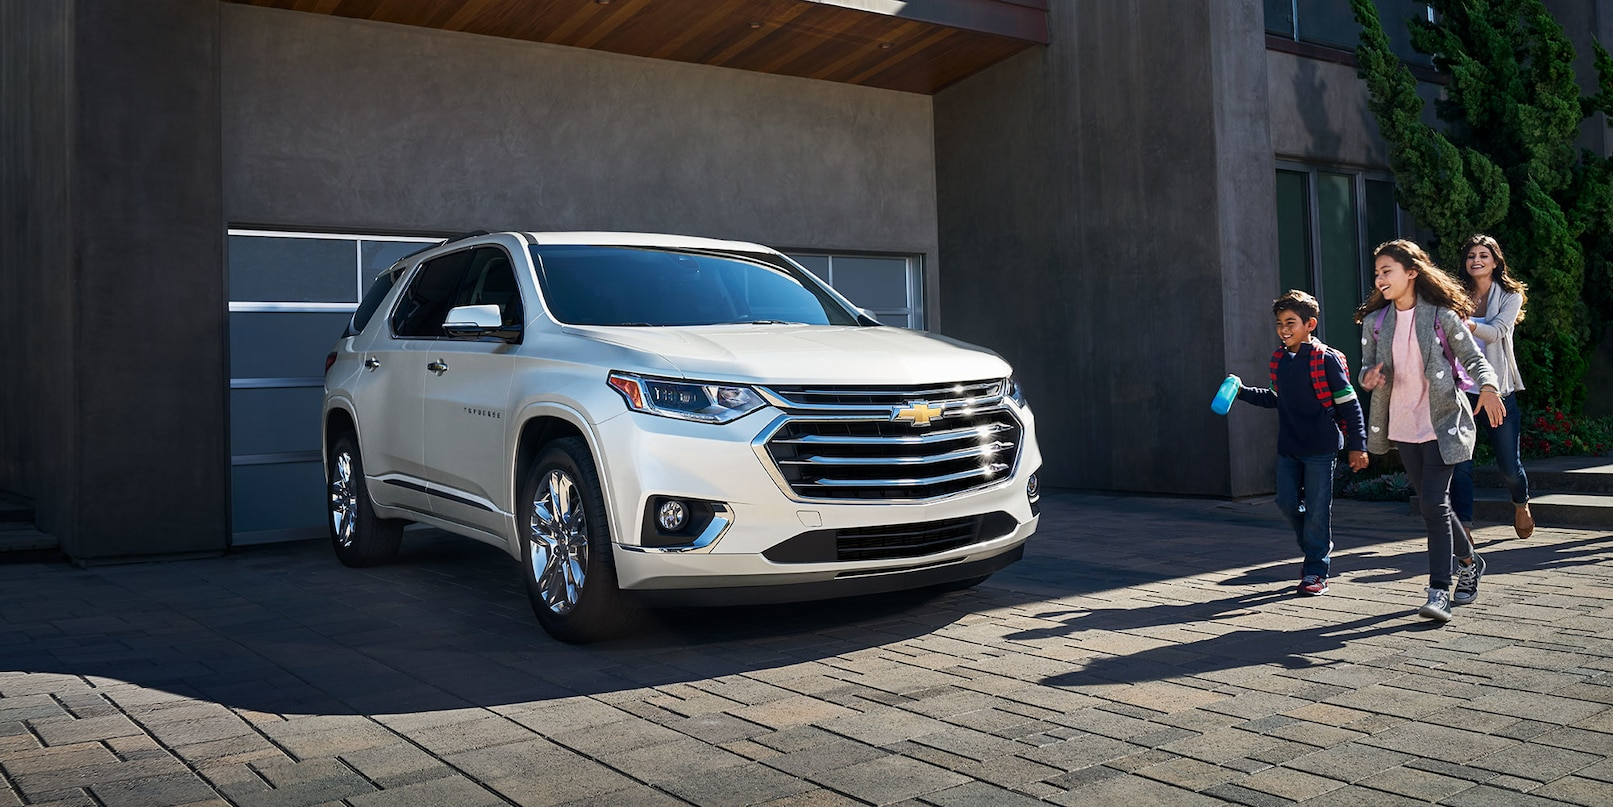 2019 Chevrolet Traverse Financing in Elk Grove, CA